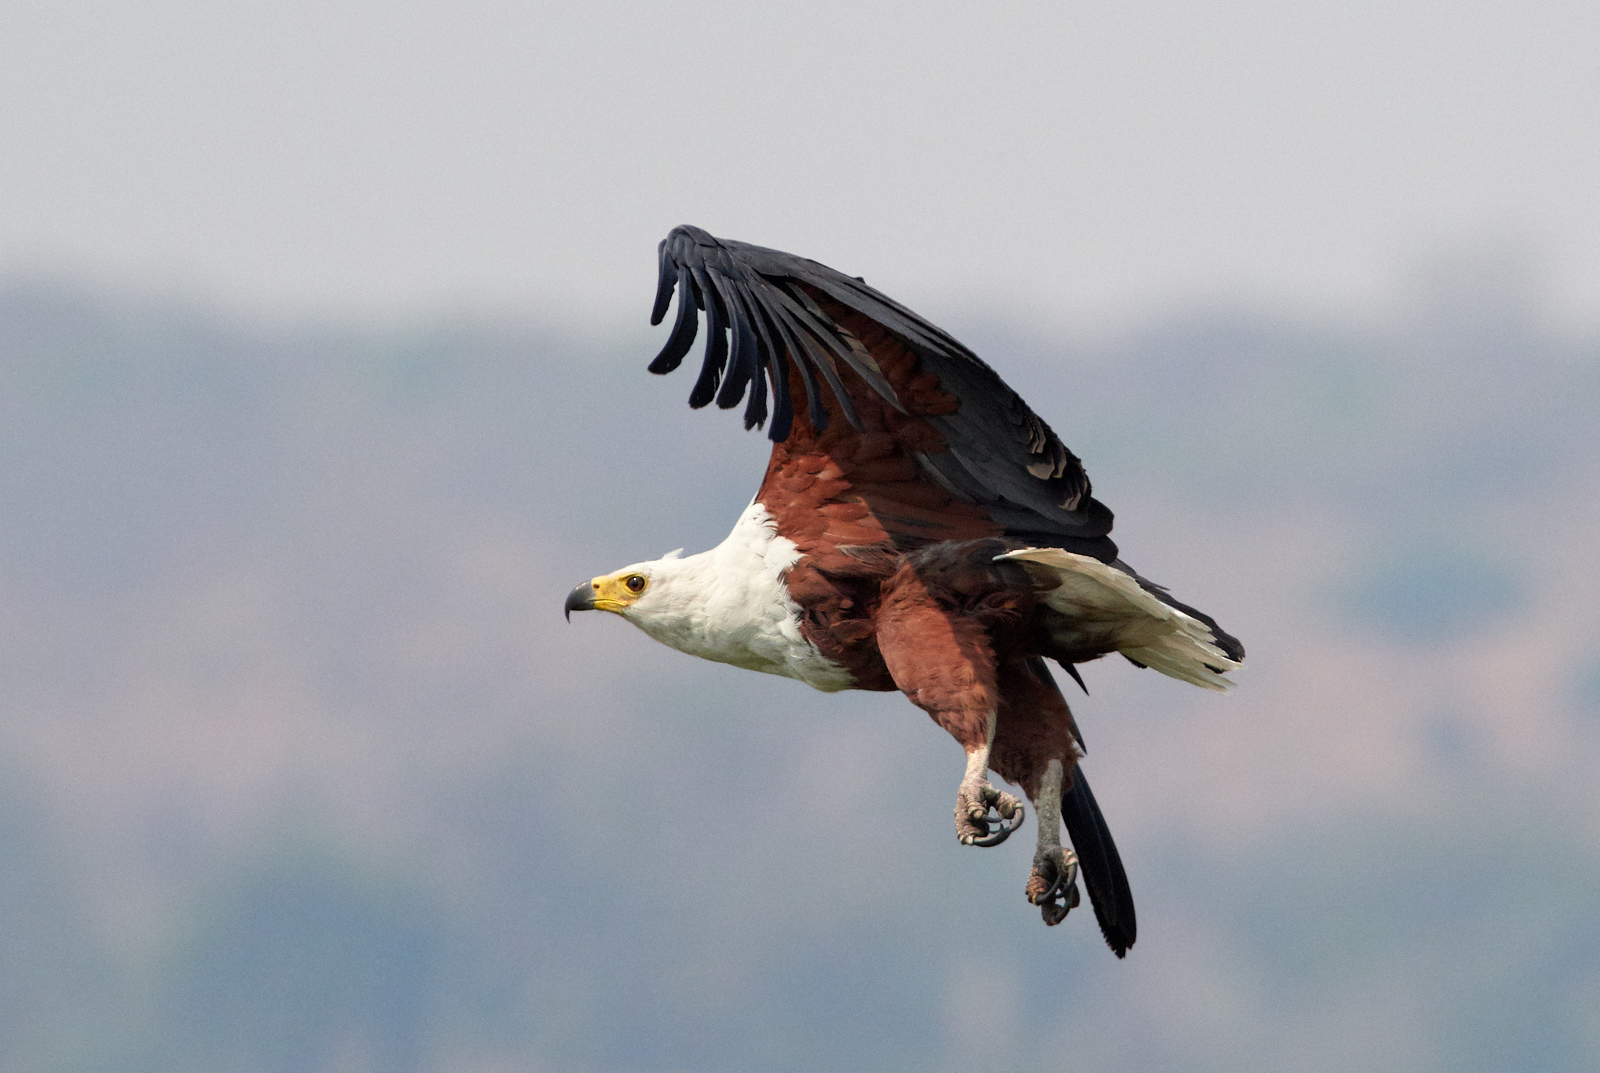 Fish Eagle 1600x1200 sRGB.jpg